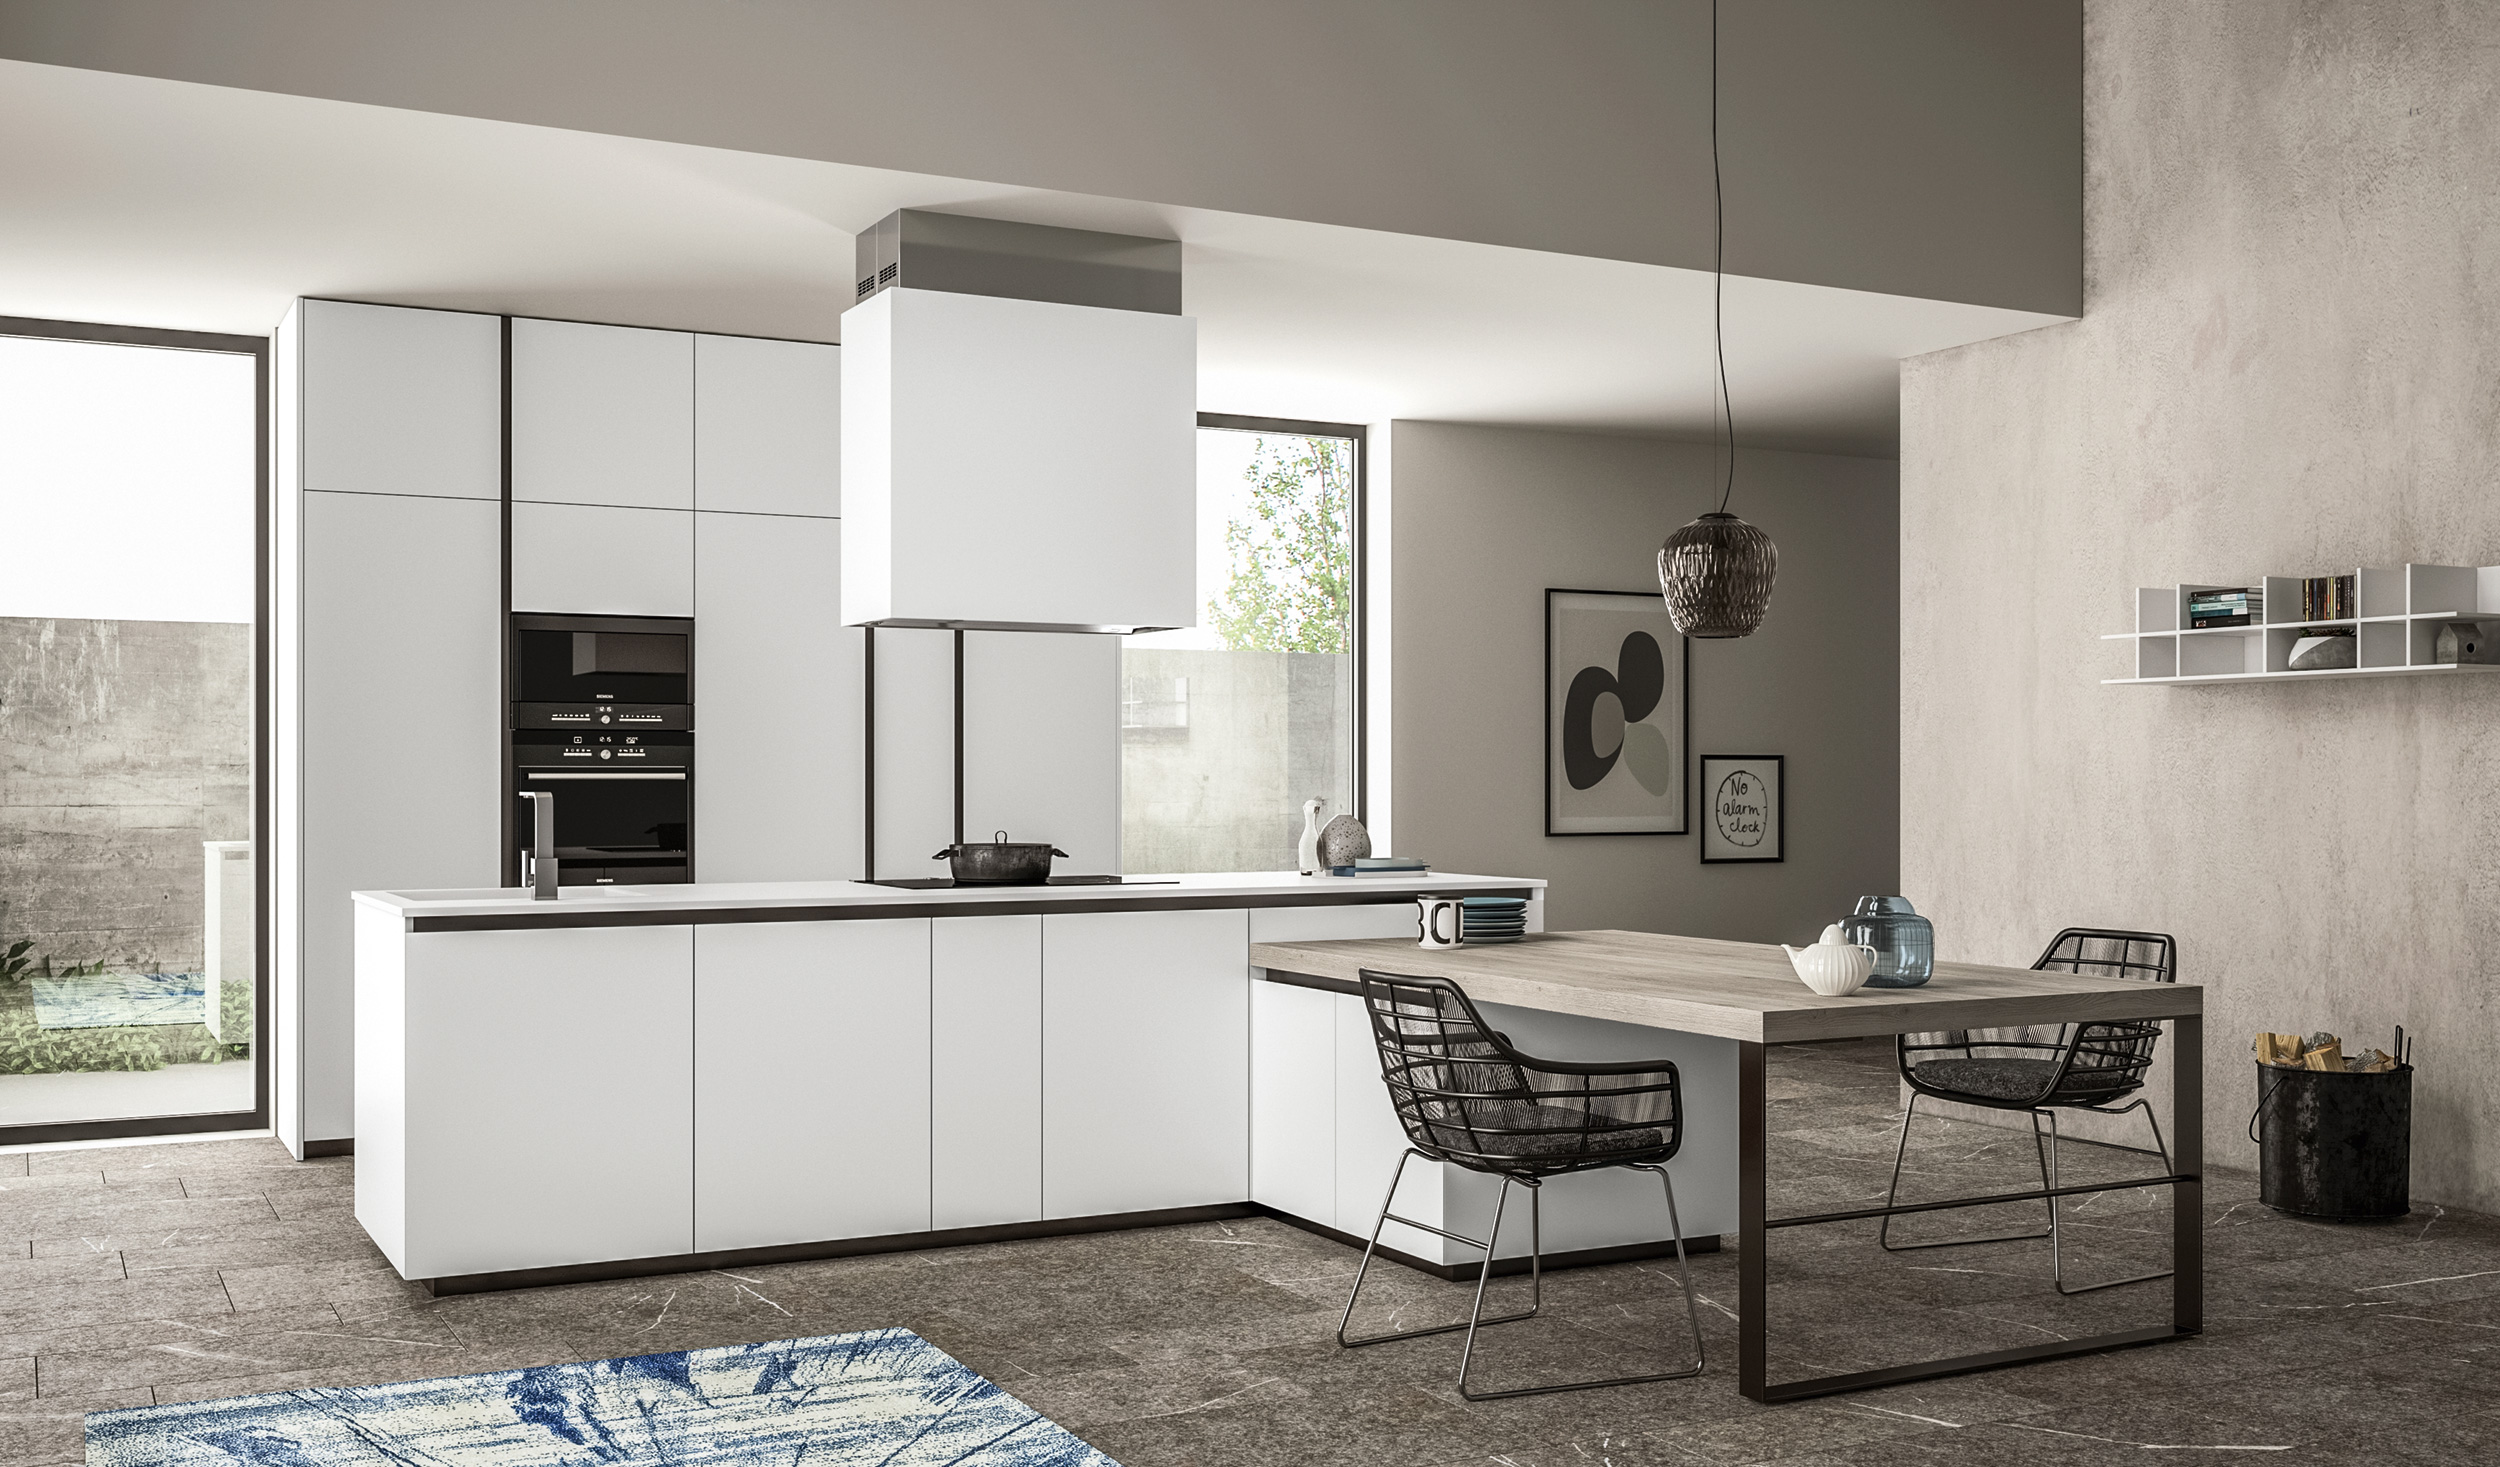 kitchen-diamanta-01.jpg